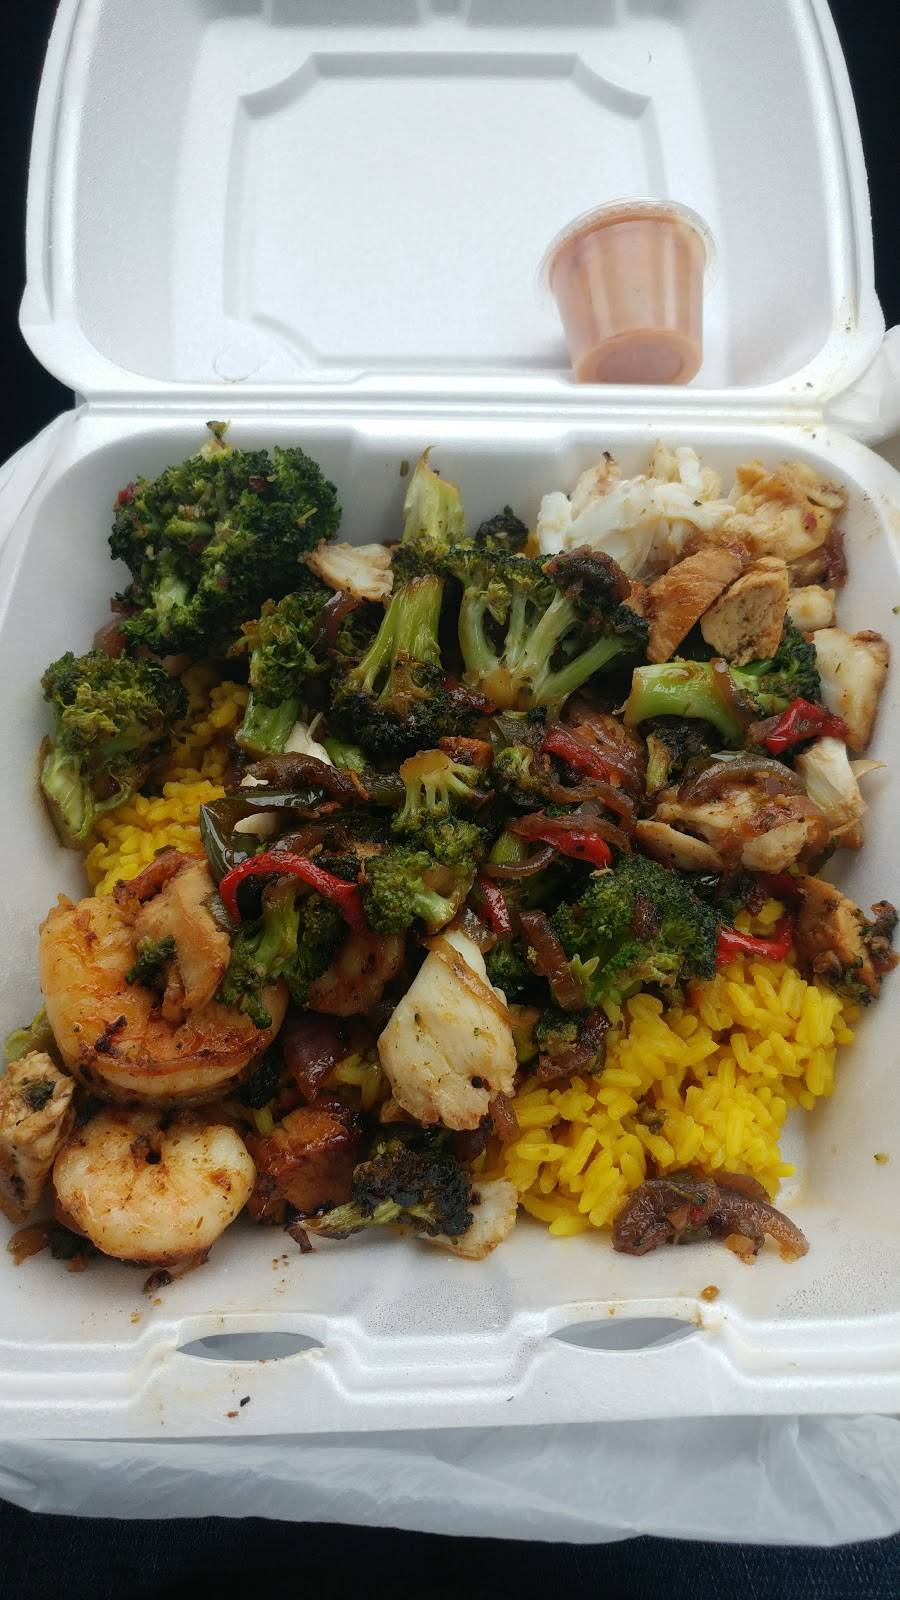 TaylorMade Food carryout - Restaurant   3121 E Monument St